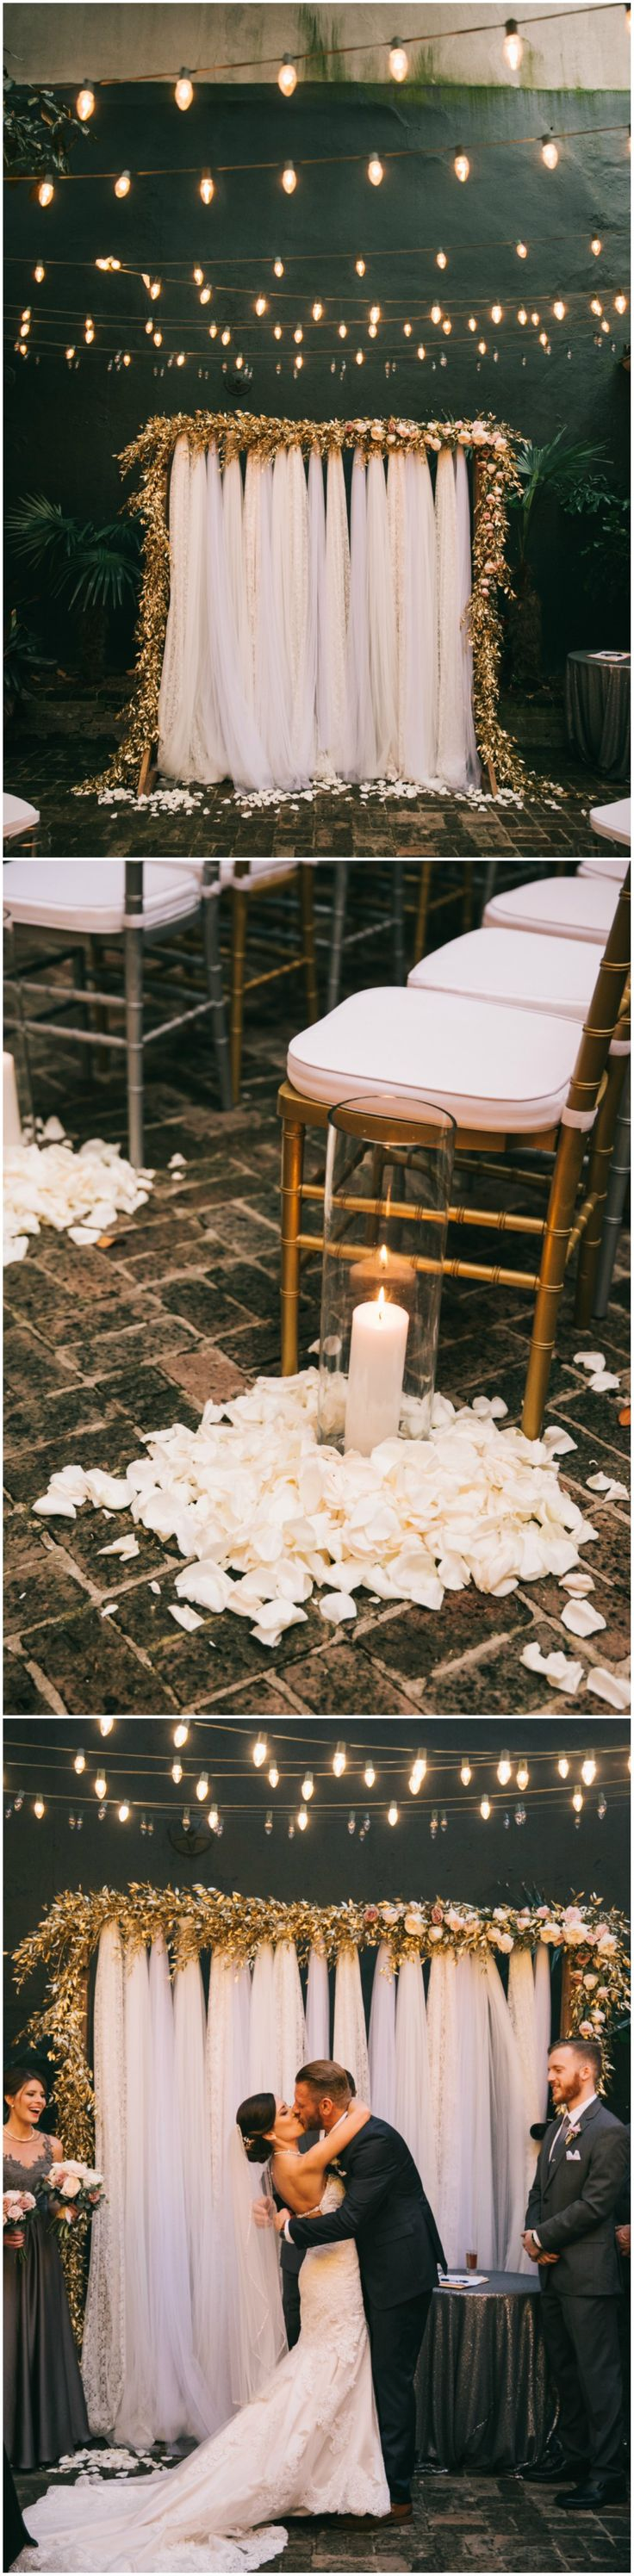 Romantic courtyard wedding ceremony, white petals on the floor, candles, wedding arbor, pink and white florals, white fabric, bistro lights, see the full wedding feature on borrowedandblue.com // Sarah Mattix Photography